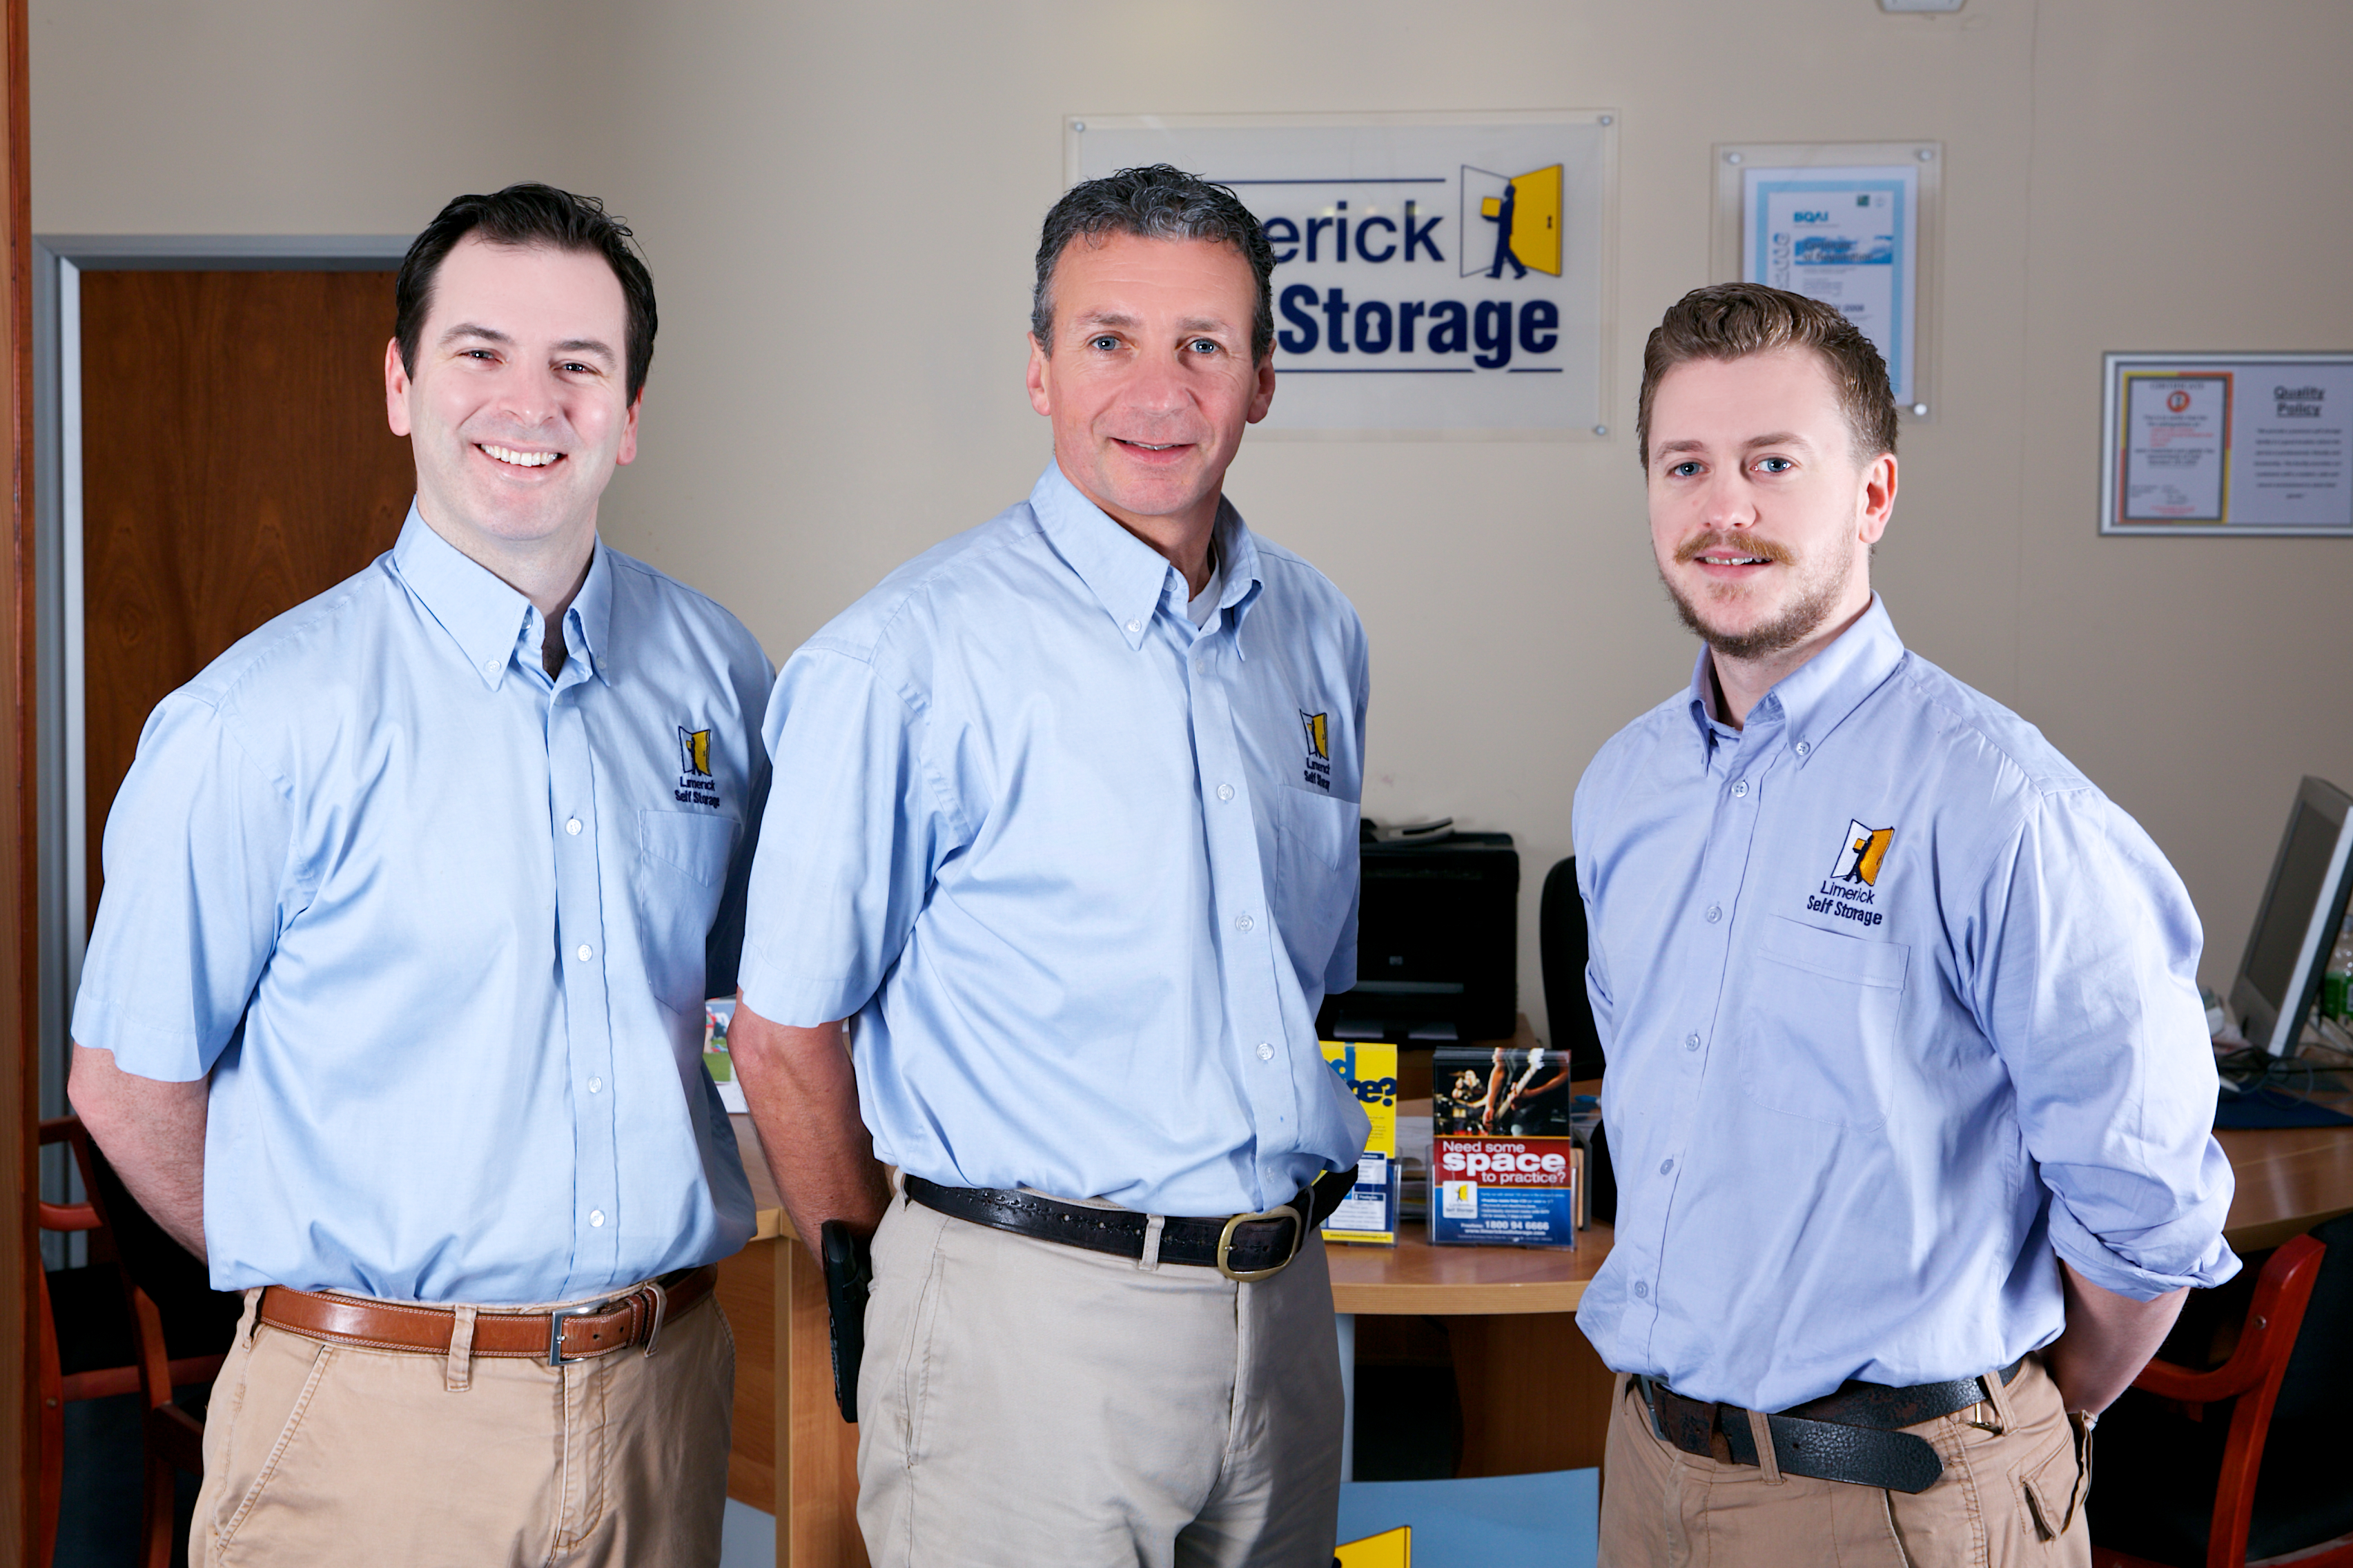 Limerick Self Storage to giveaway 100 Gifts